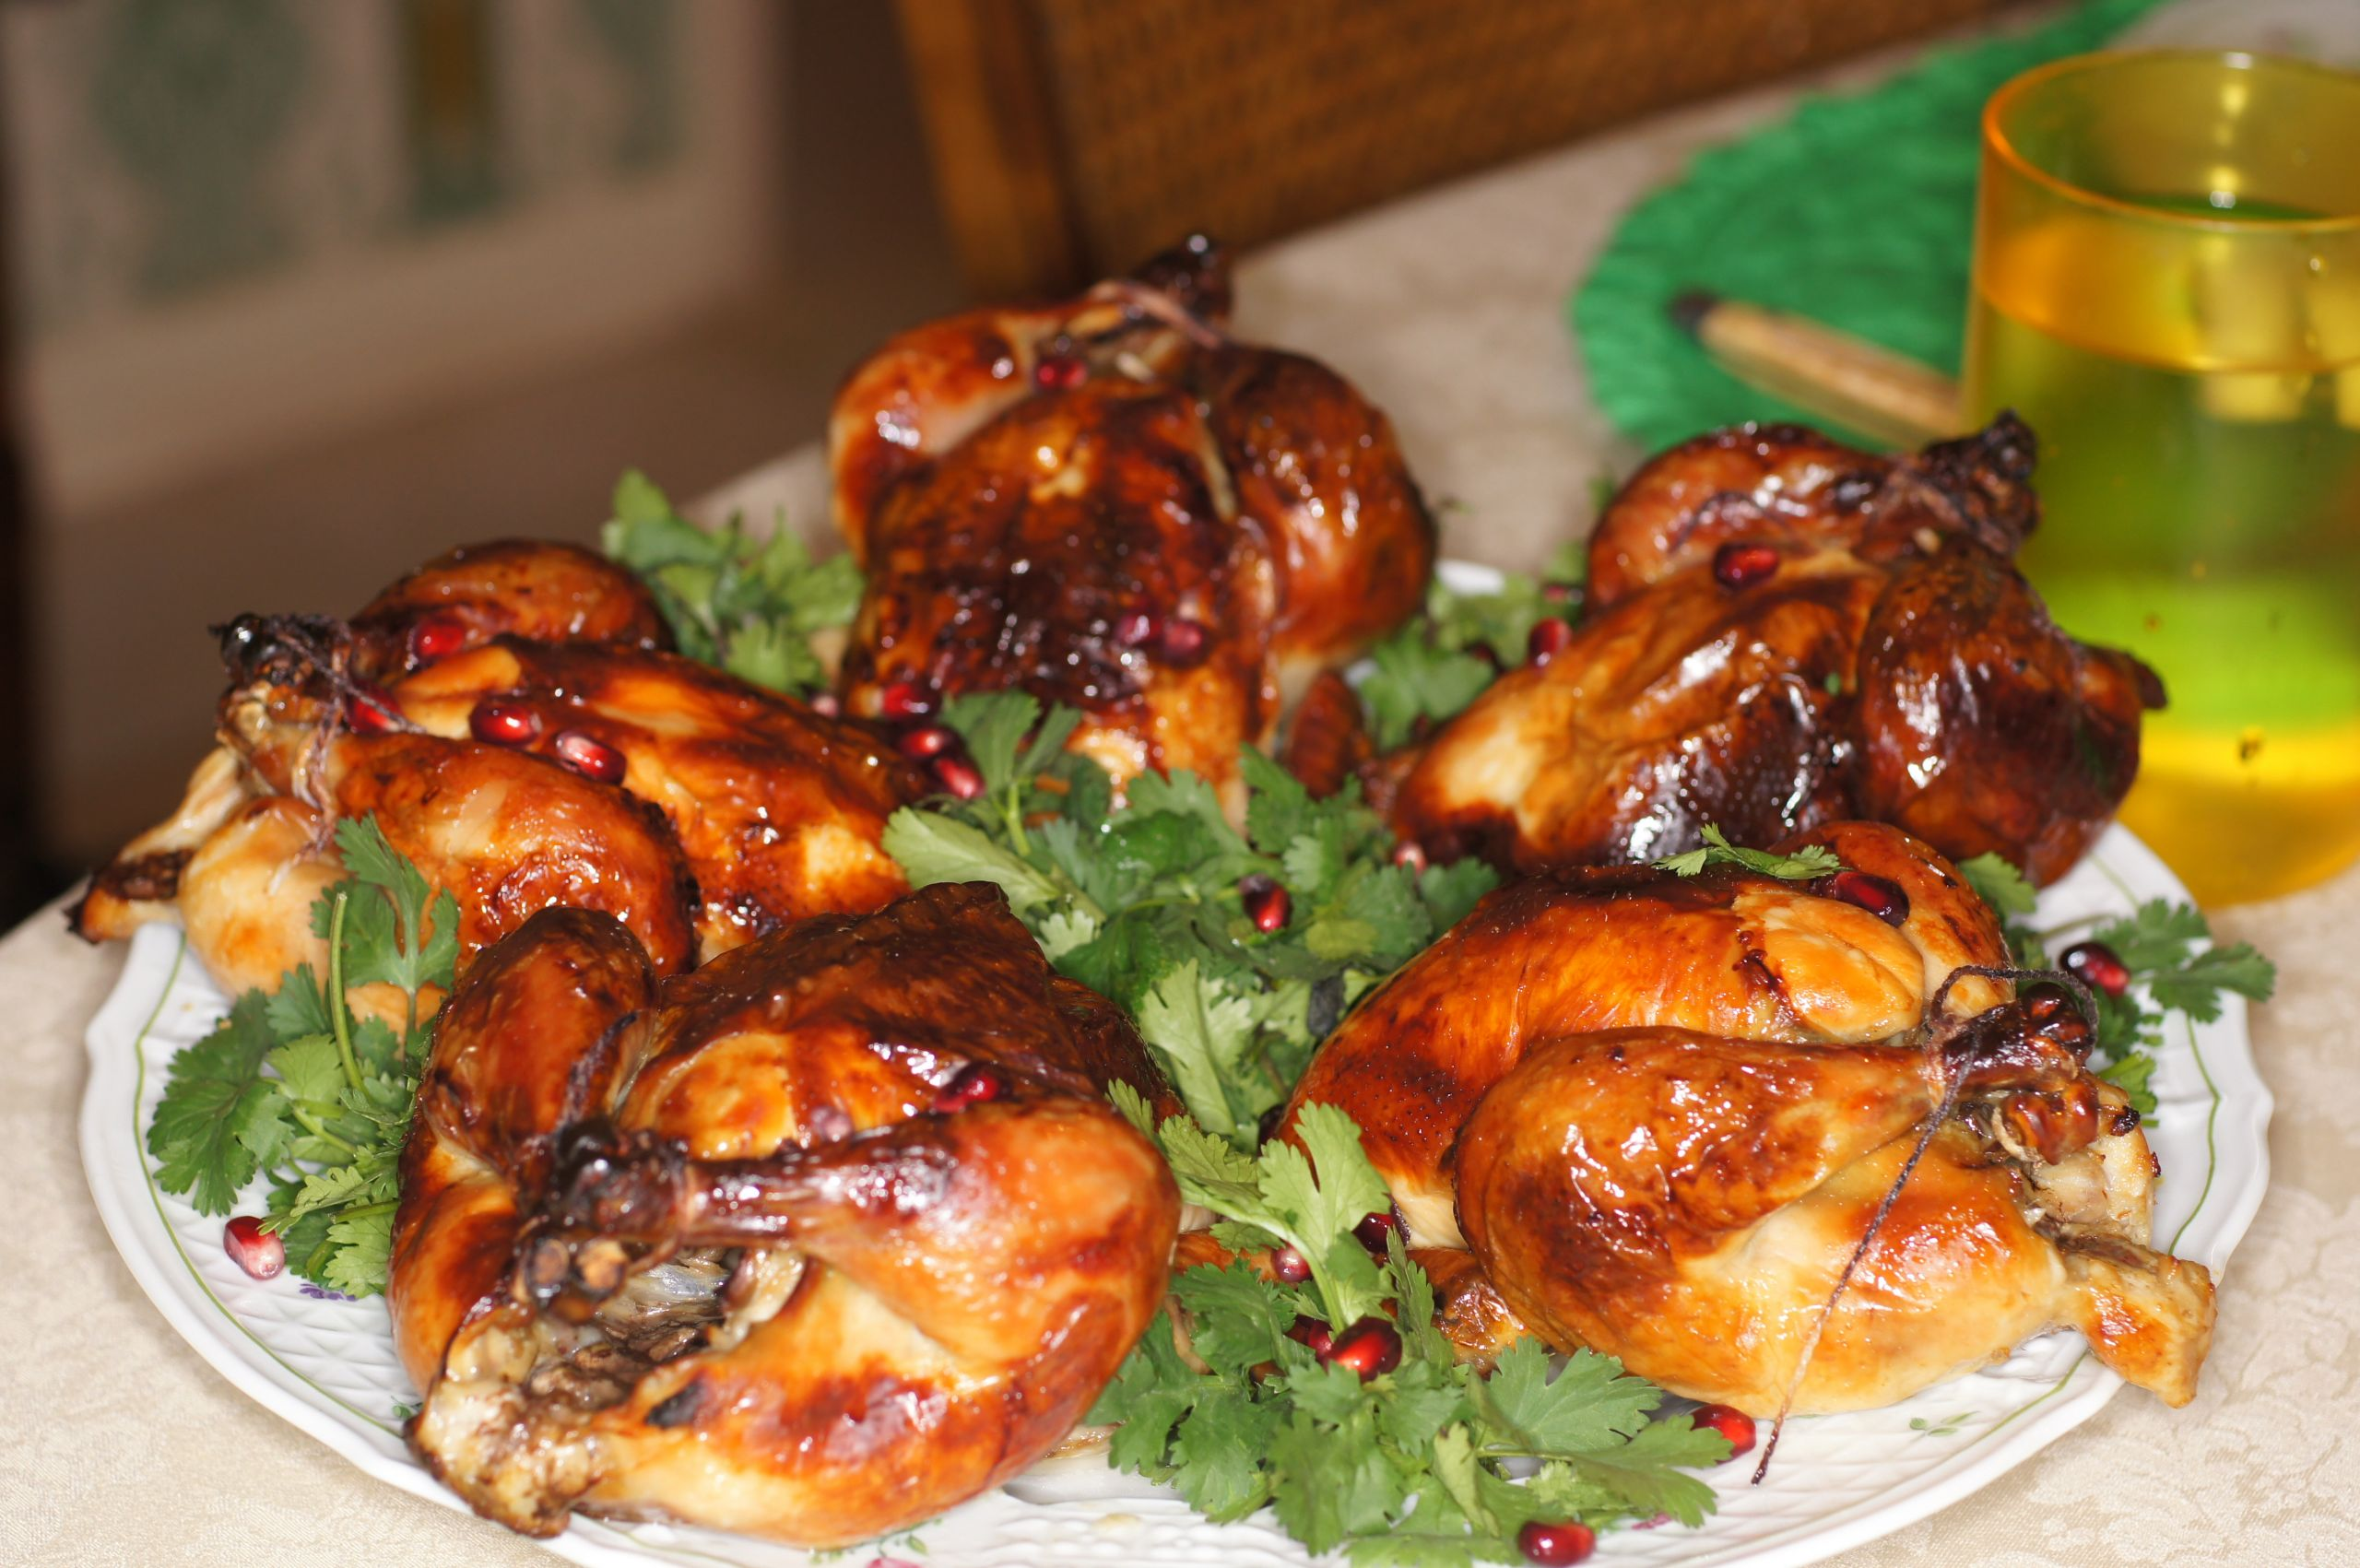 Recipes For Cornish Game Hens  Roasted Brined Cornish Game Hens with Pomegranate Sauce